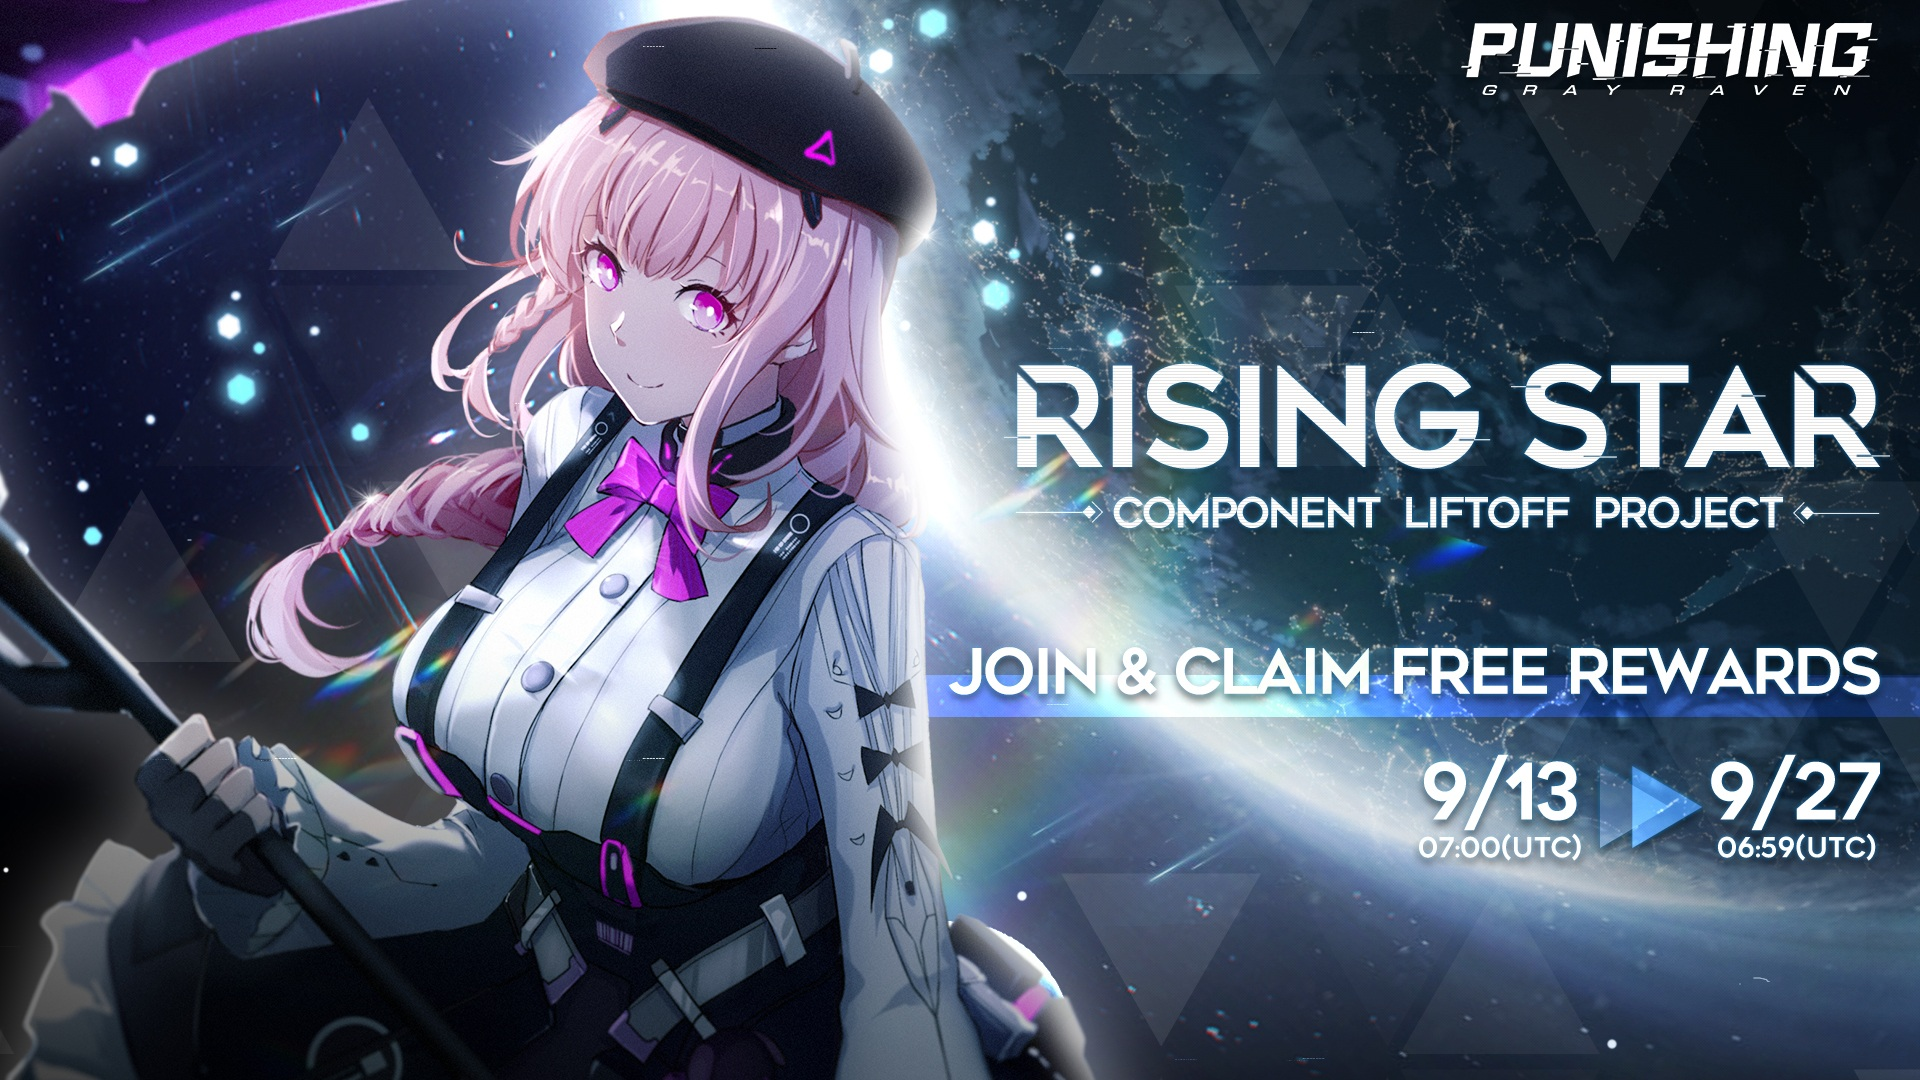 Punishing: Gray Raven dole out Rising Star Event and Straylight Terminal Event